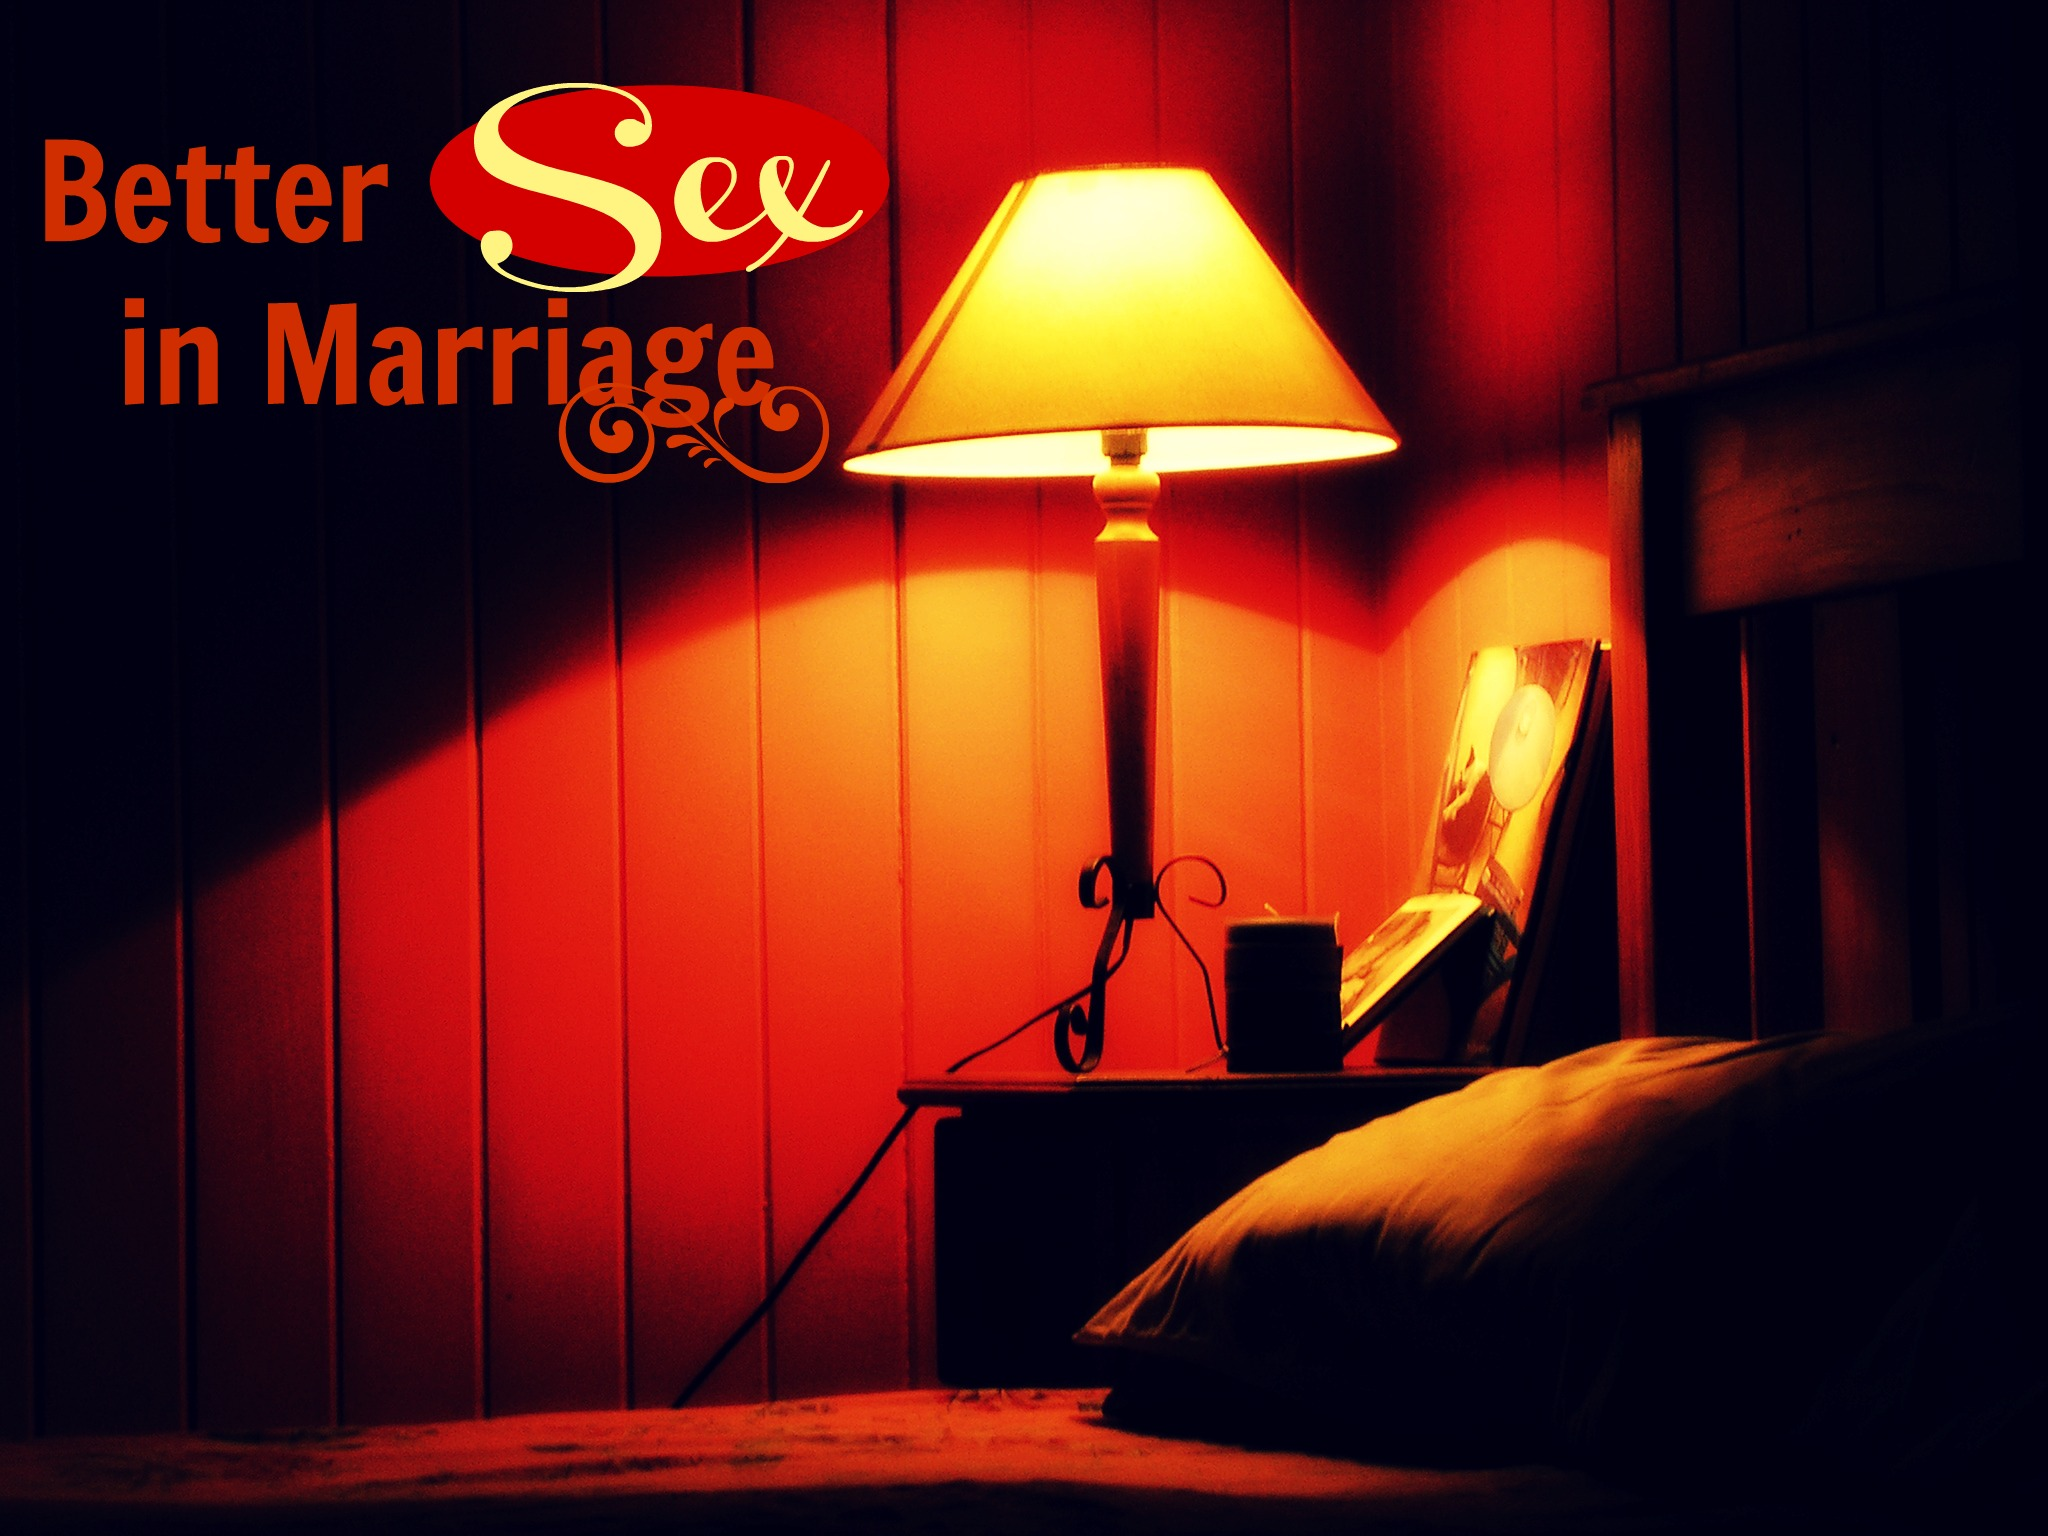 There are many ways that you can go deeper in the bedroom with your spouse.